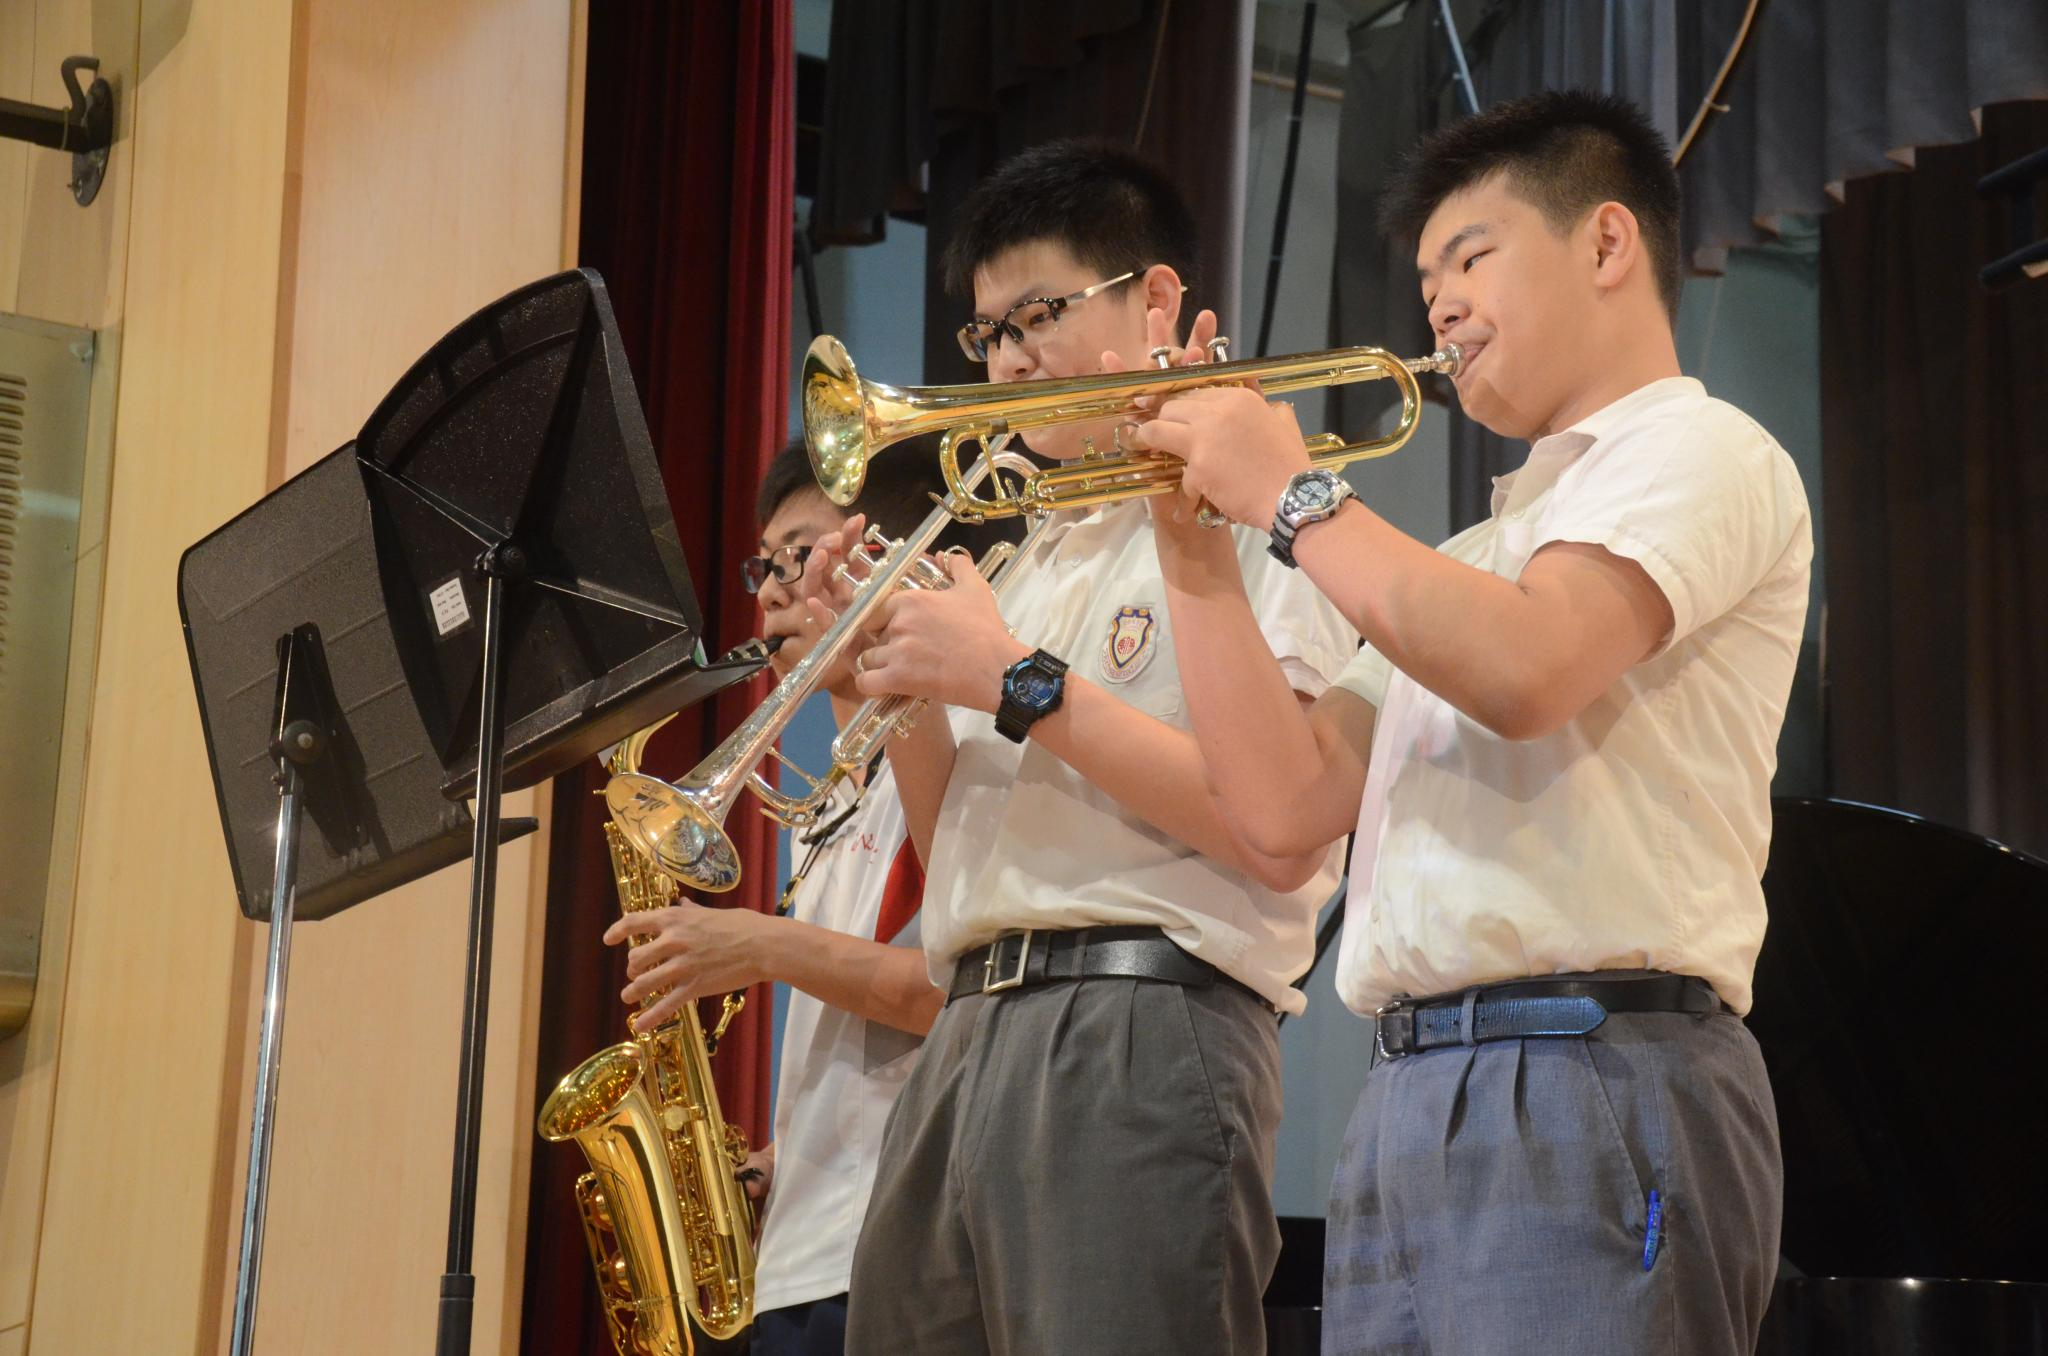 3D Wong Chun Lok is playing the saxophone. 3D Yung Mo Kin and 3F Yau You Wah are playing the trumpets.